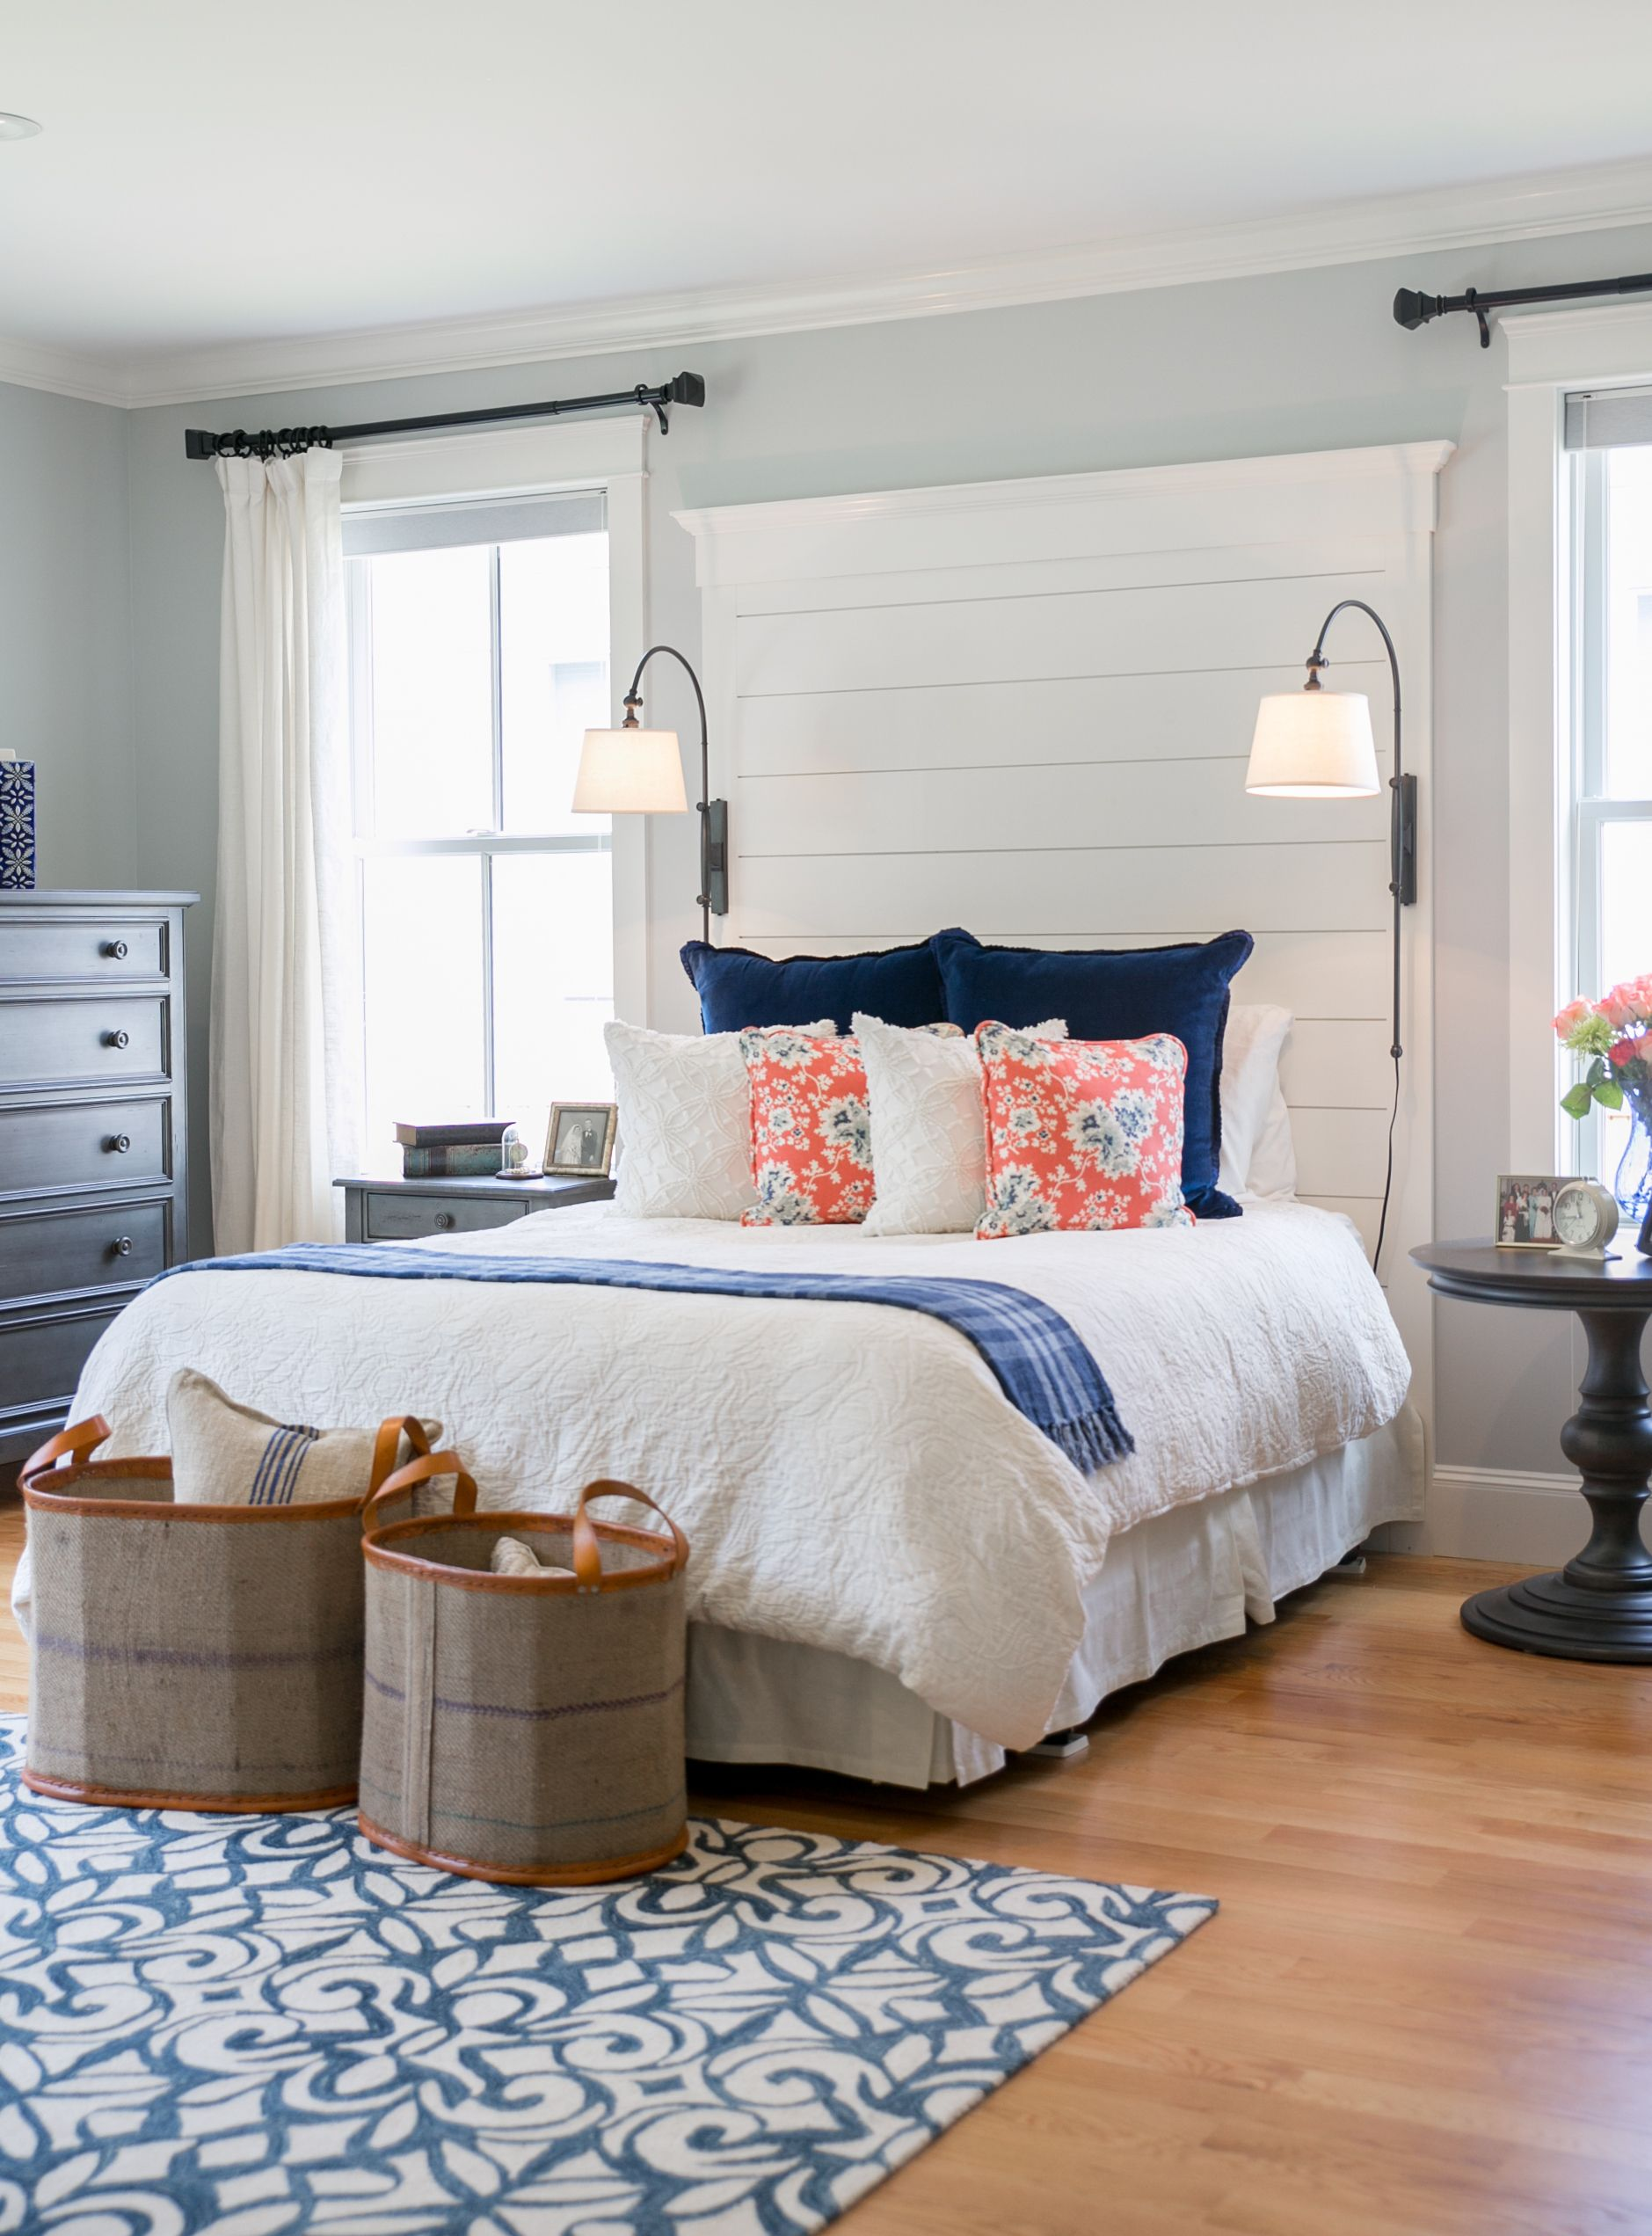 Maine Bedroom Furniture The Good Homes Projects Coastal Maine Kitchen Coastal Maine